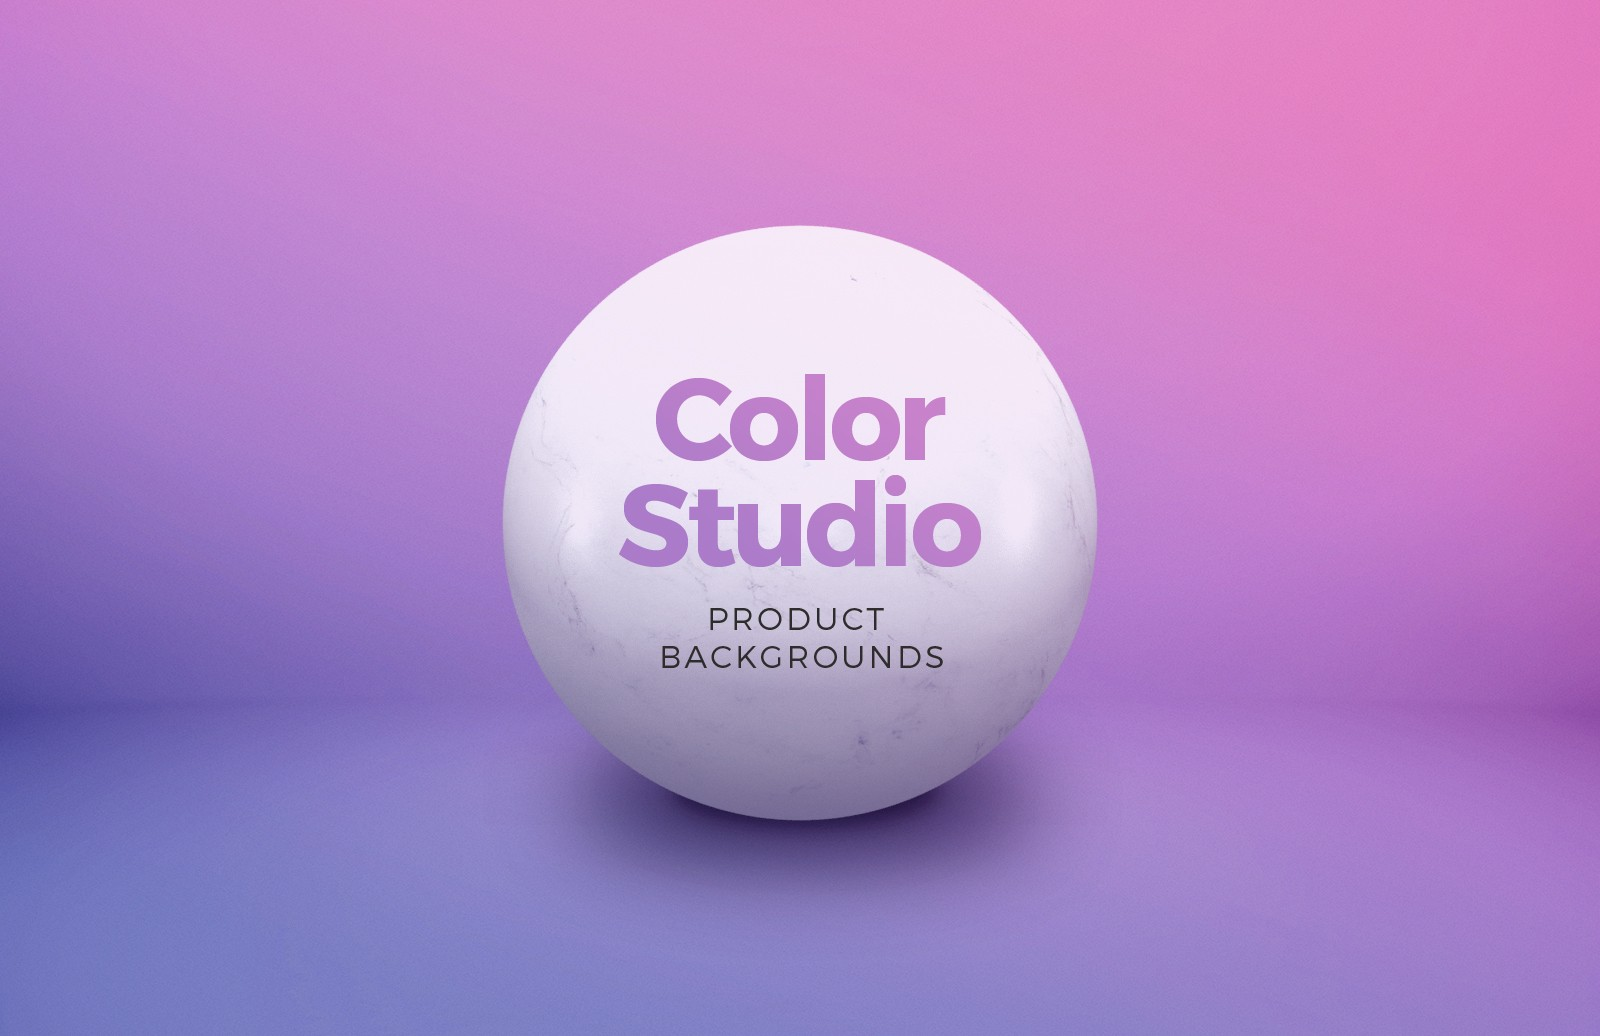 Color Studio Product Backgrounds